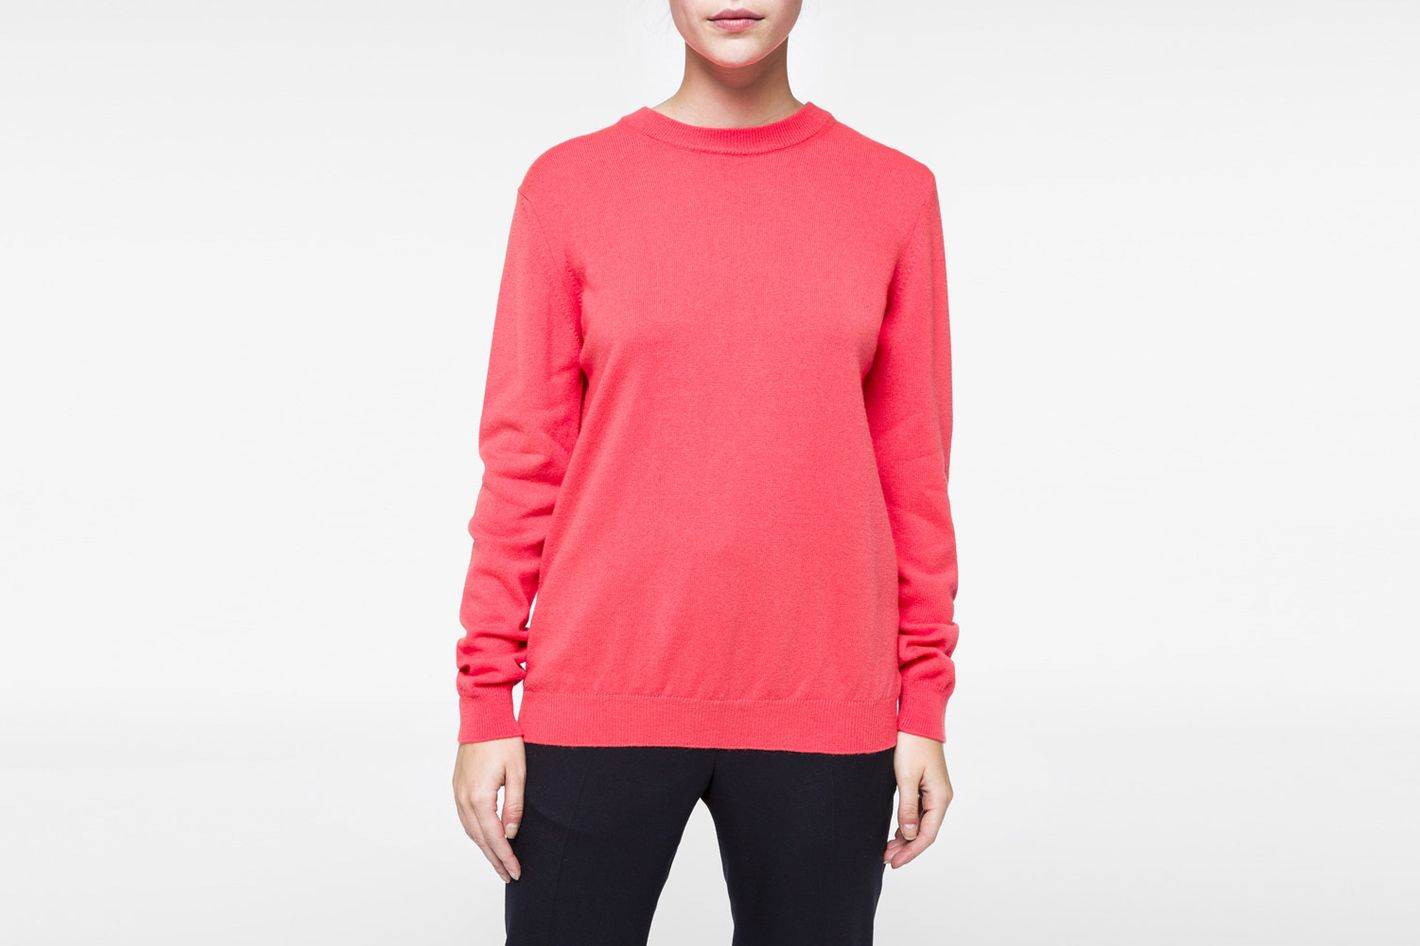 Paul Smith Coral Cashmere Sweater